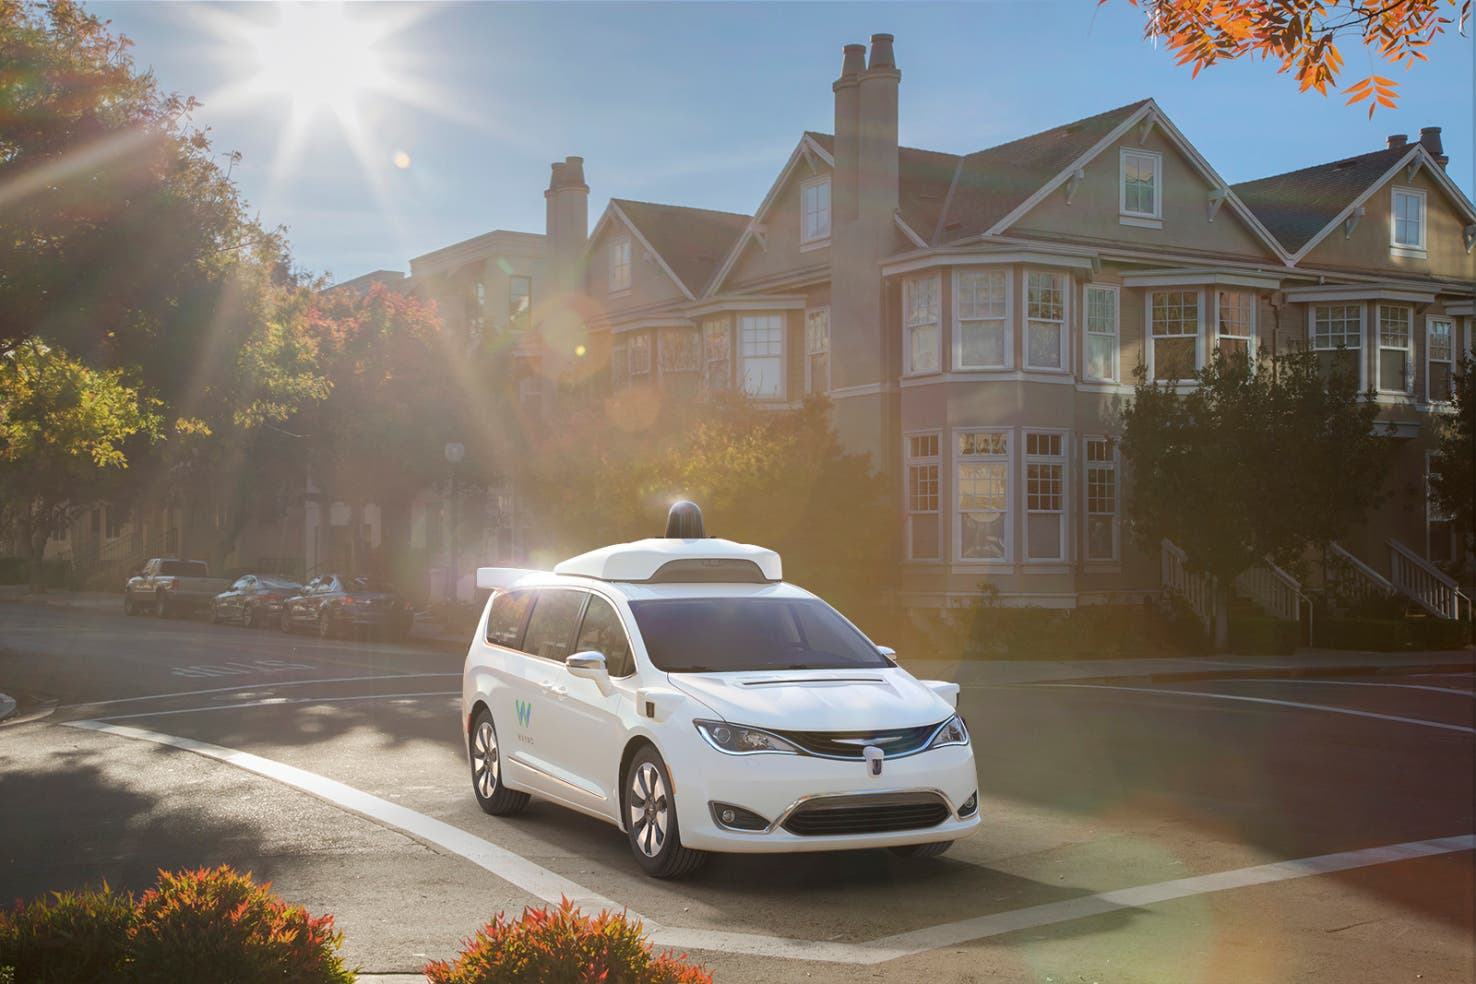 Waymo Chrysler Pacifica autonomous car